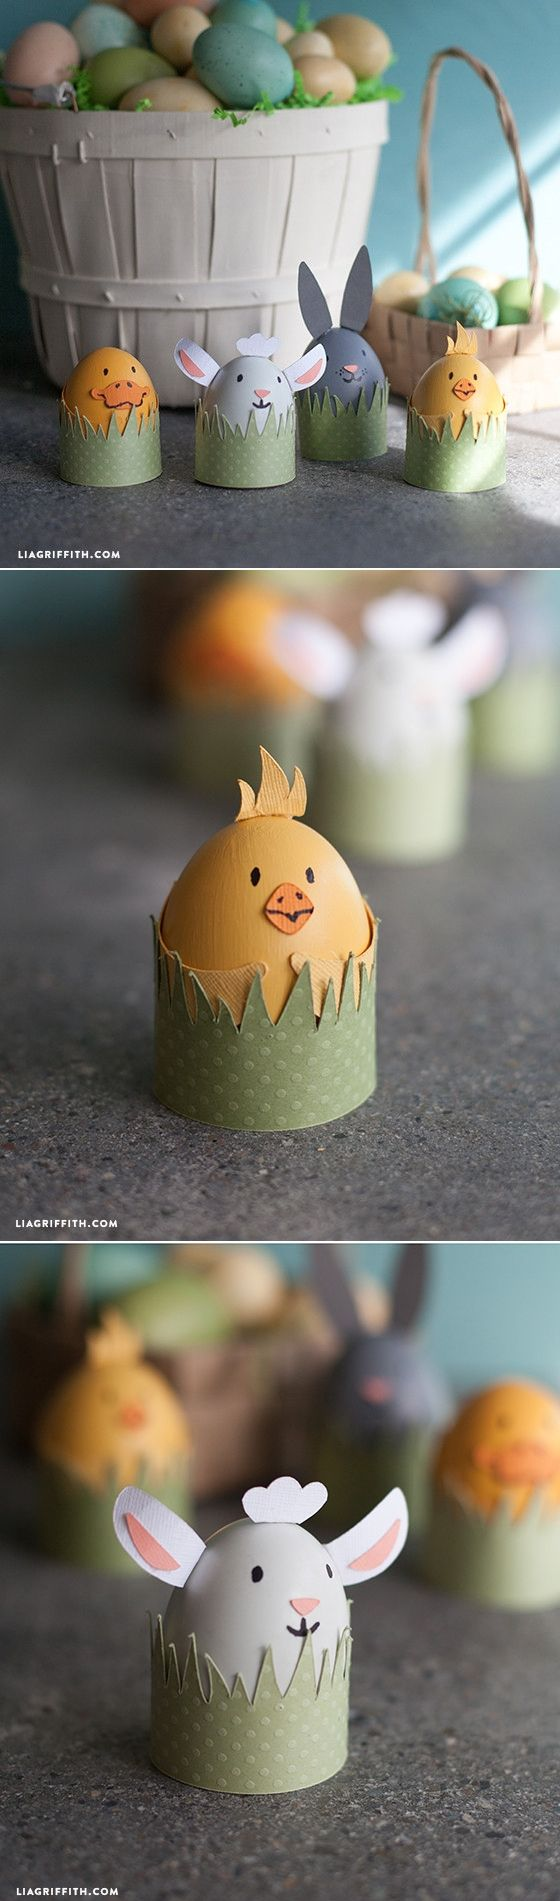 best easter related images on pinterest easter crafts easter